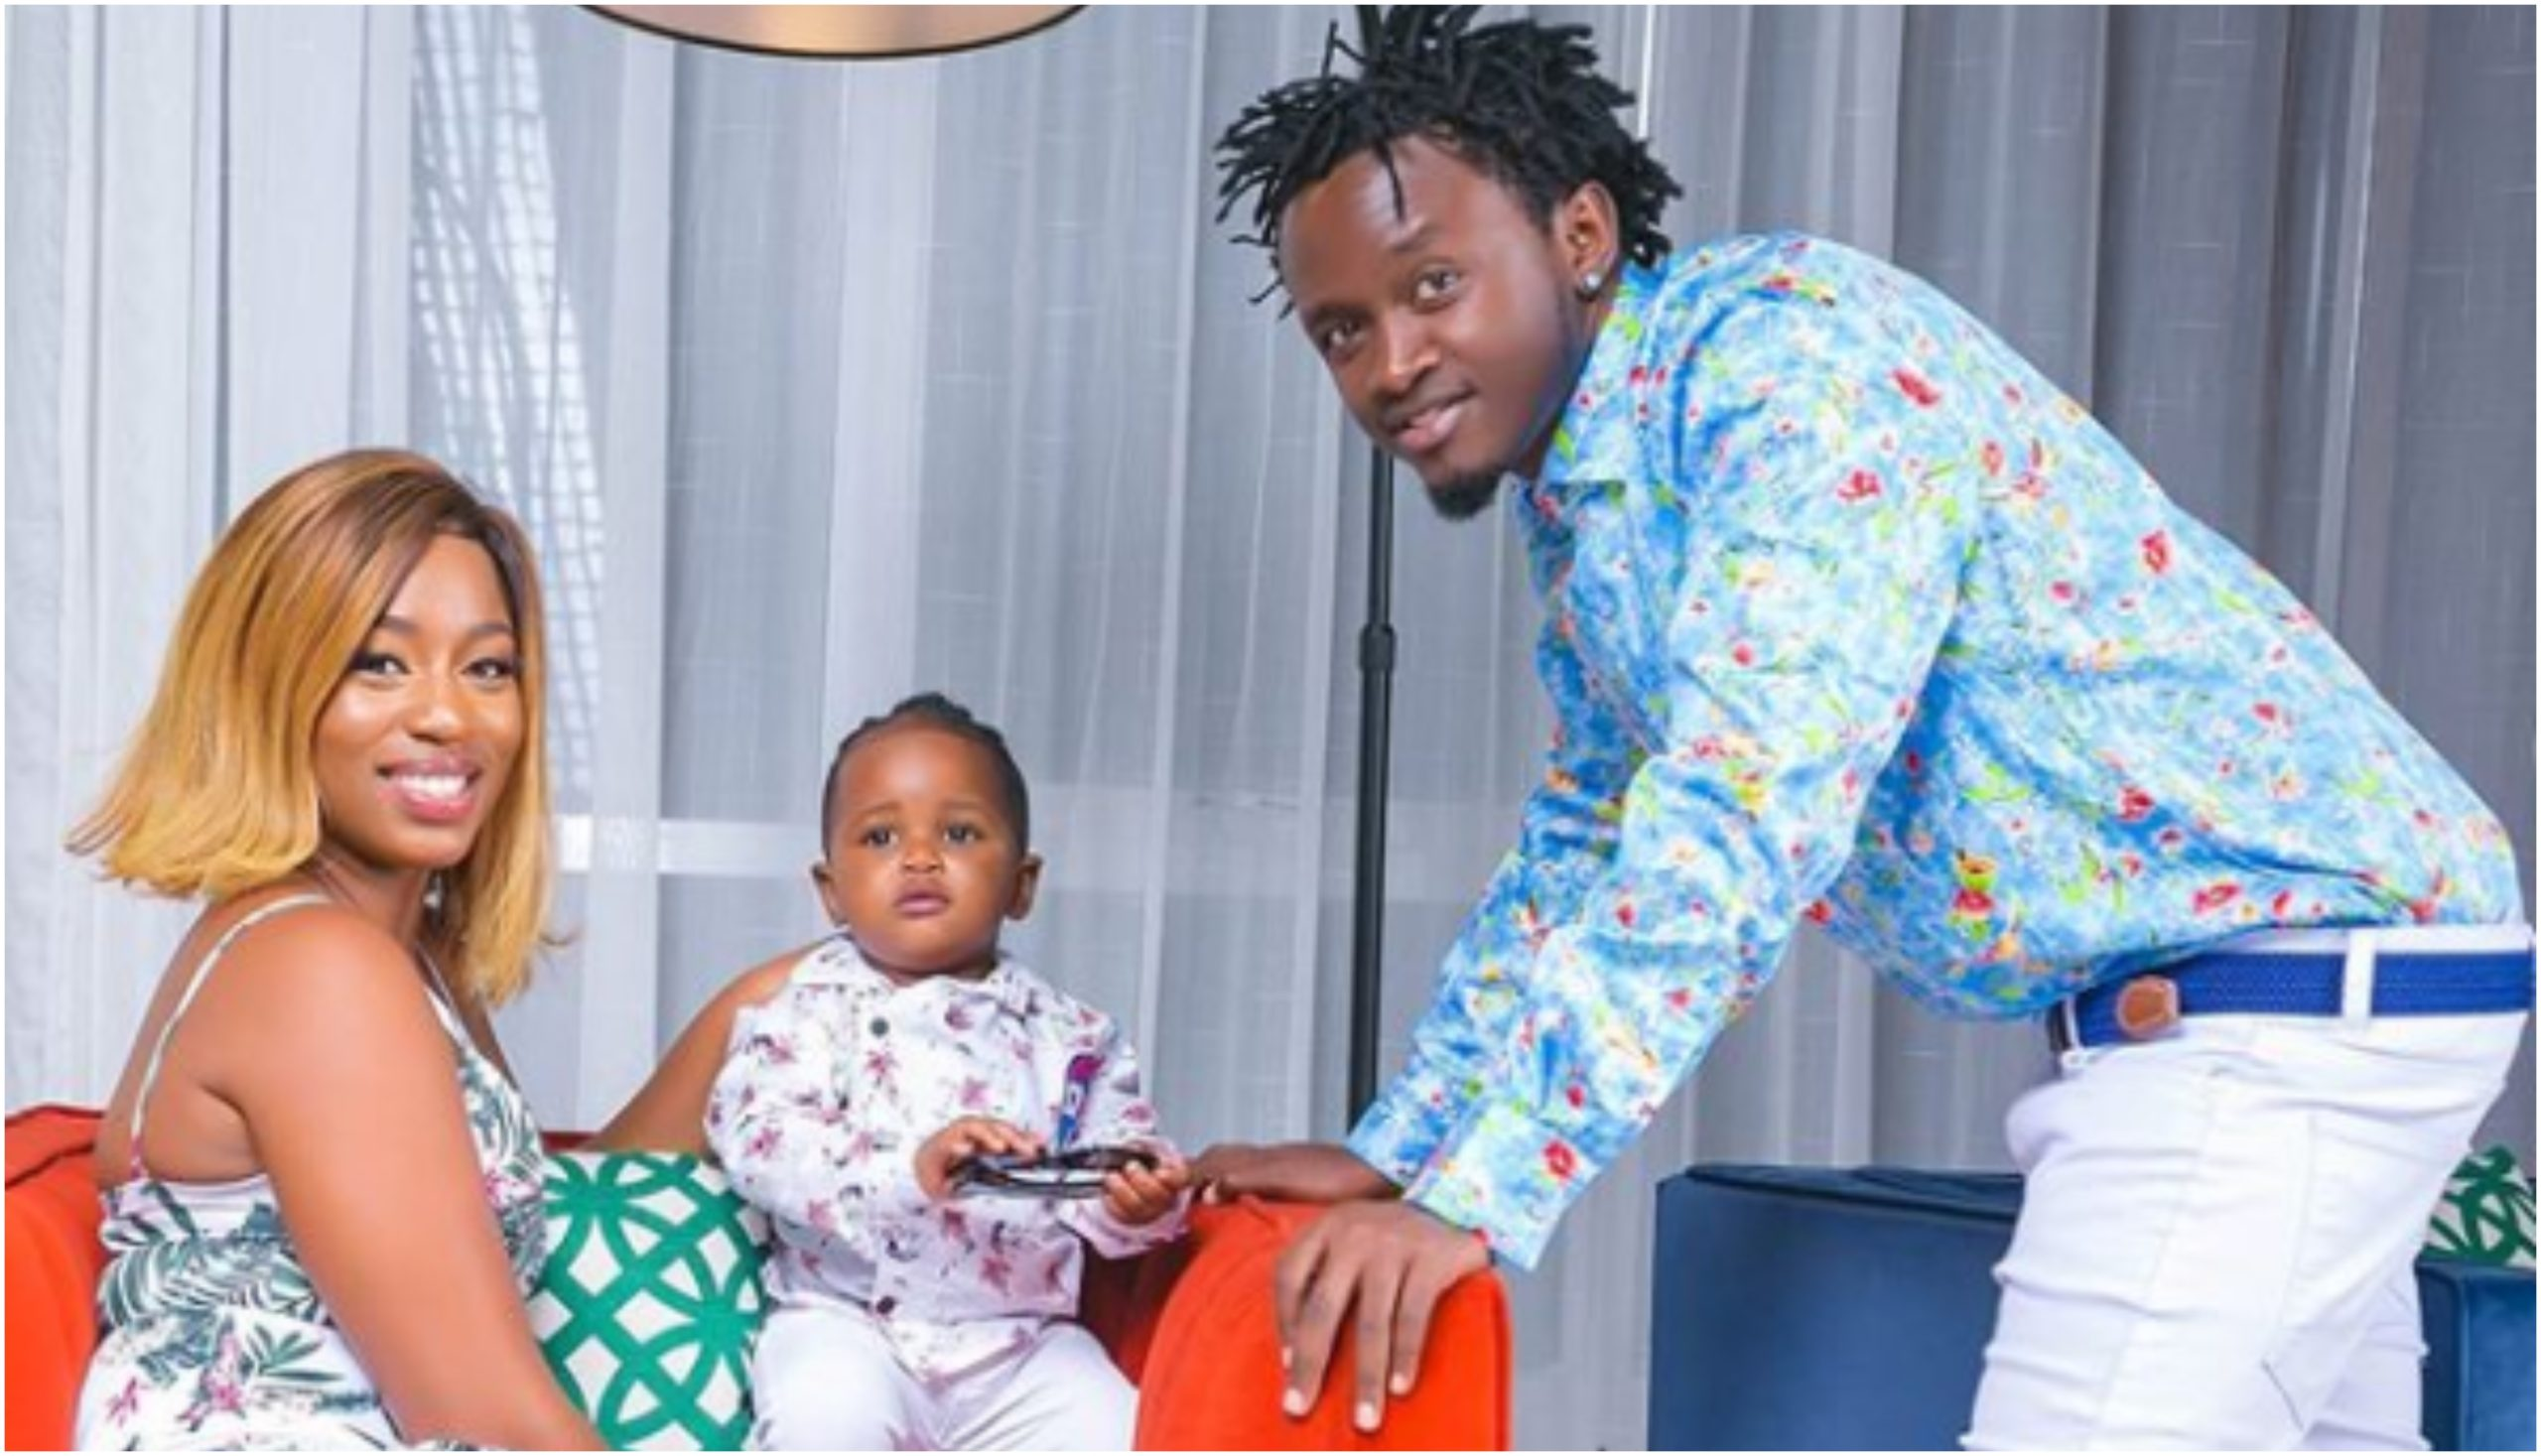 Majesty Bahati's new 'girly' hairstyle stirs heated debate (Photos)